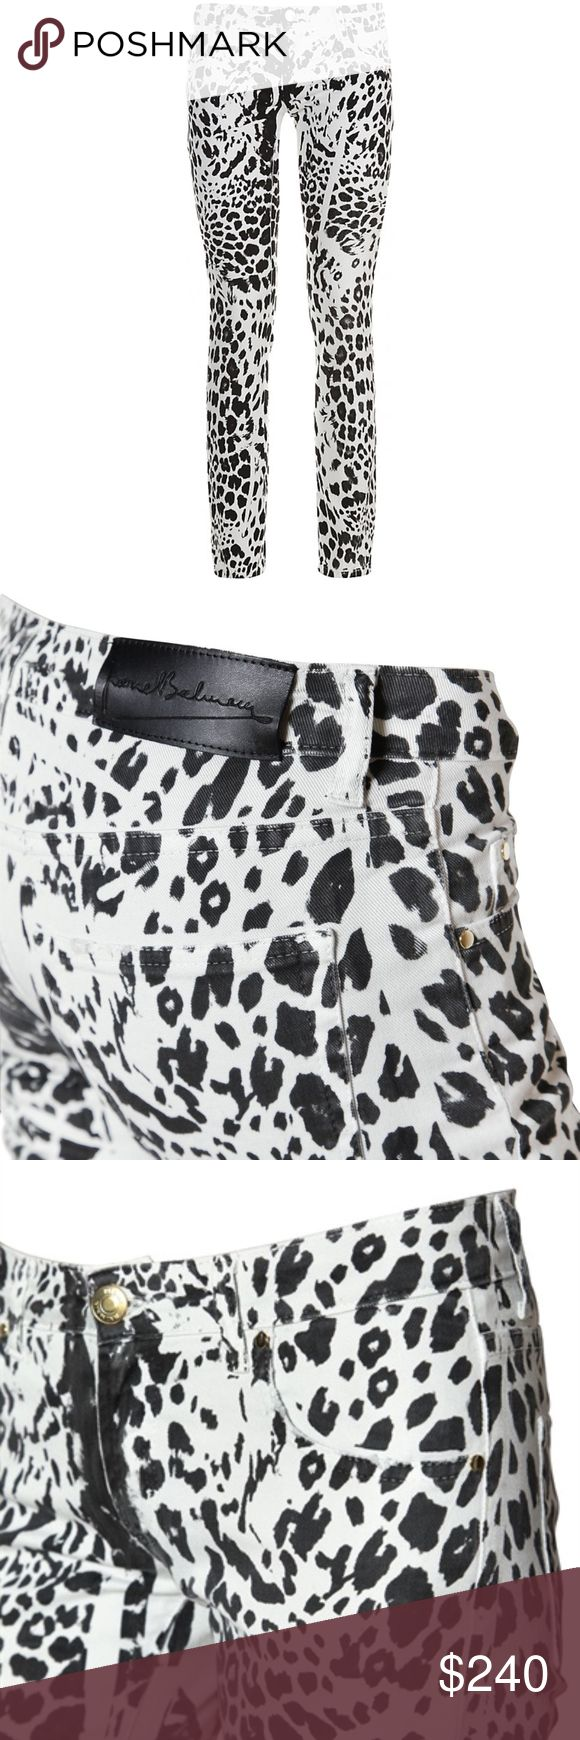 PIERRE BALMAIN Animal Leopard Print Skinny Jeans Low-rise with concealed zip fly, five pocket styling with metal rivets, 98% cotton, 2% elastane, made in italy. Color: léopard Pierre Hardy Jeans Skinny